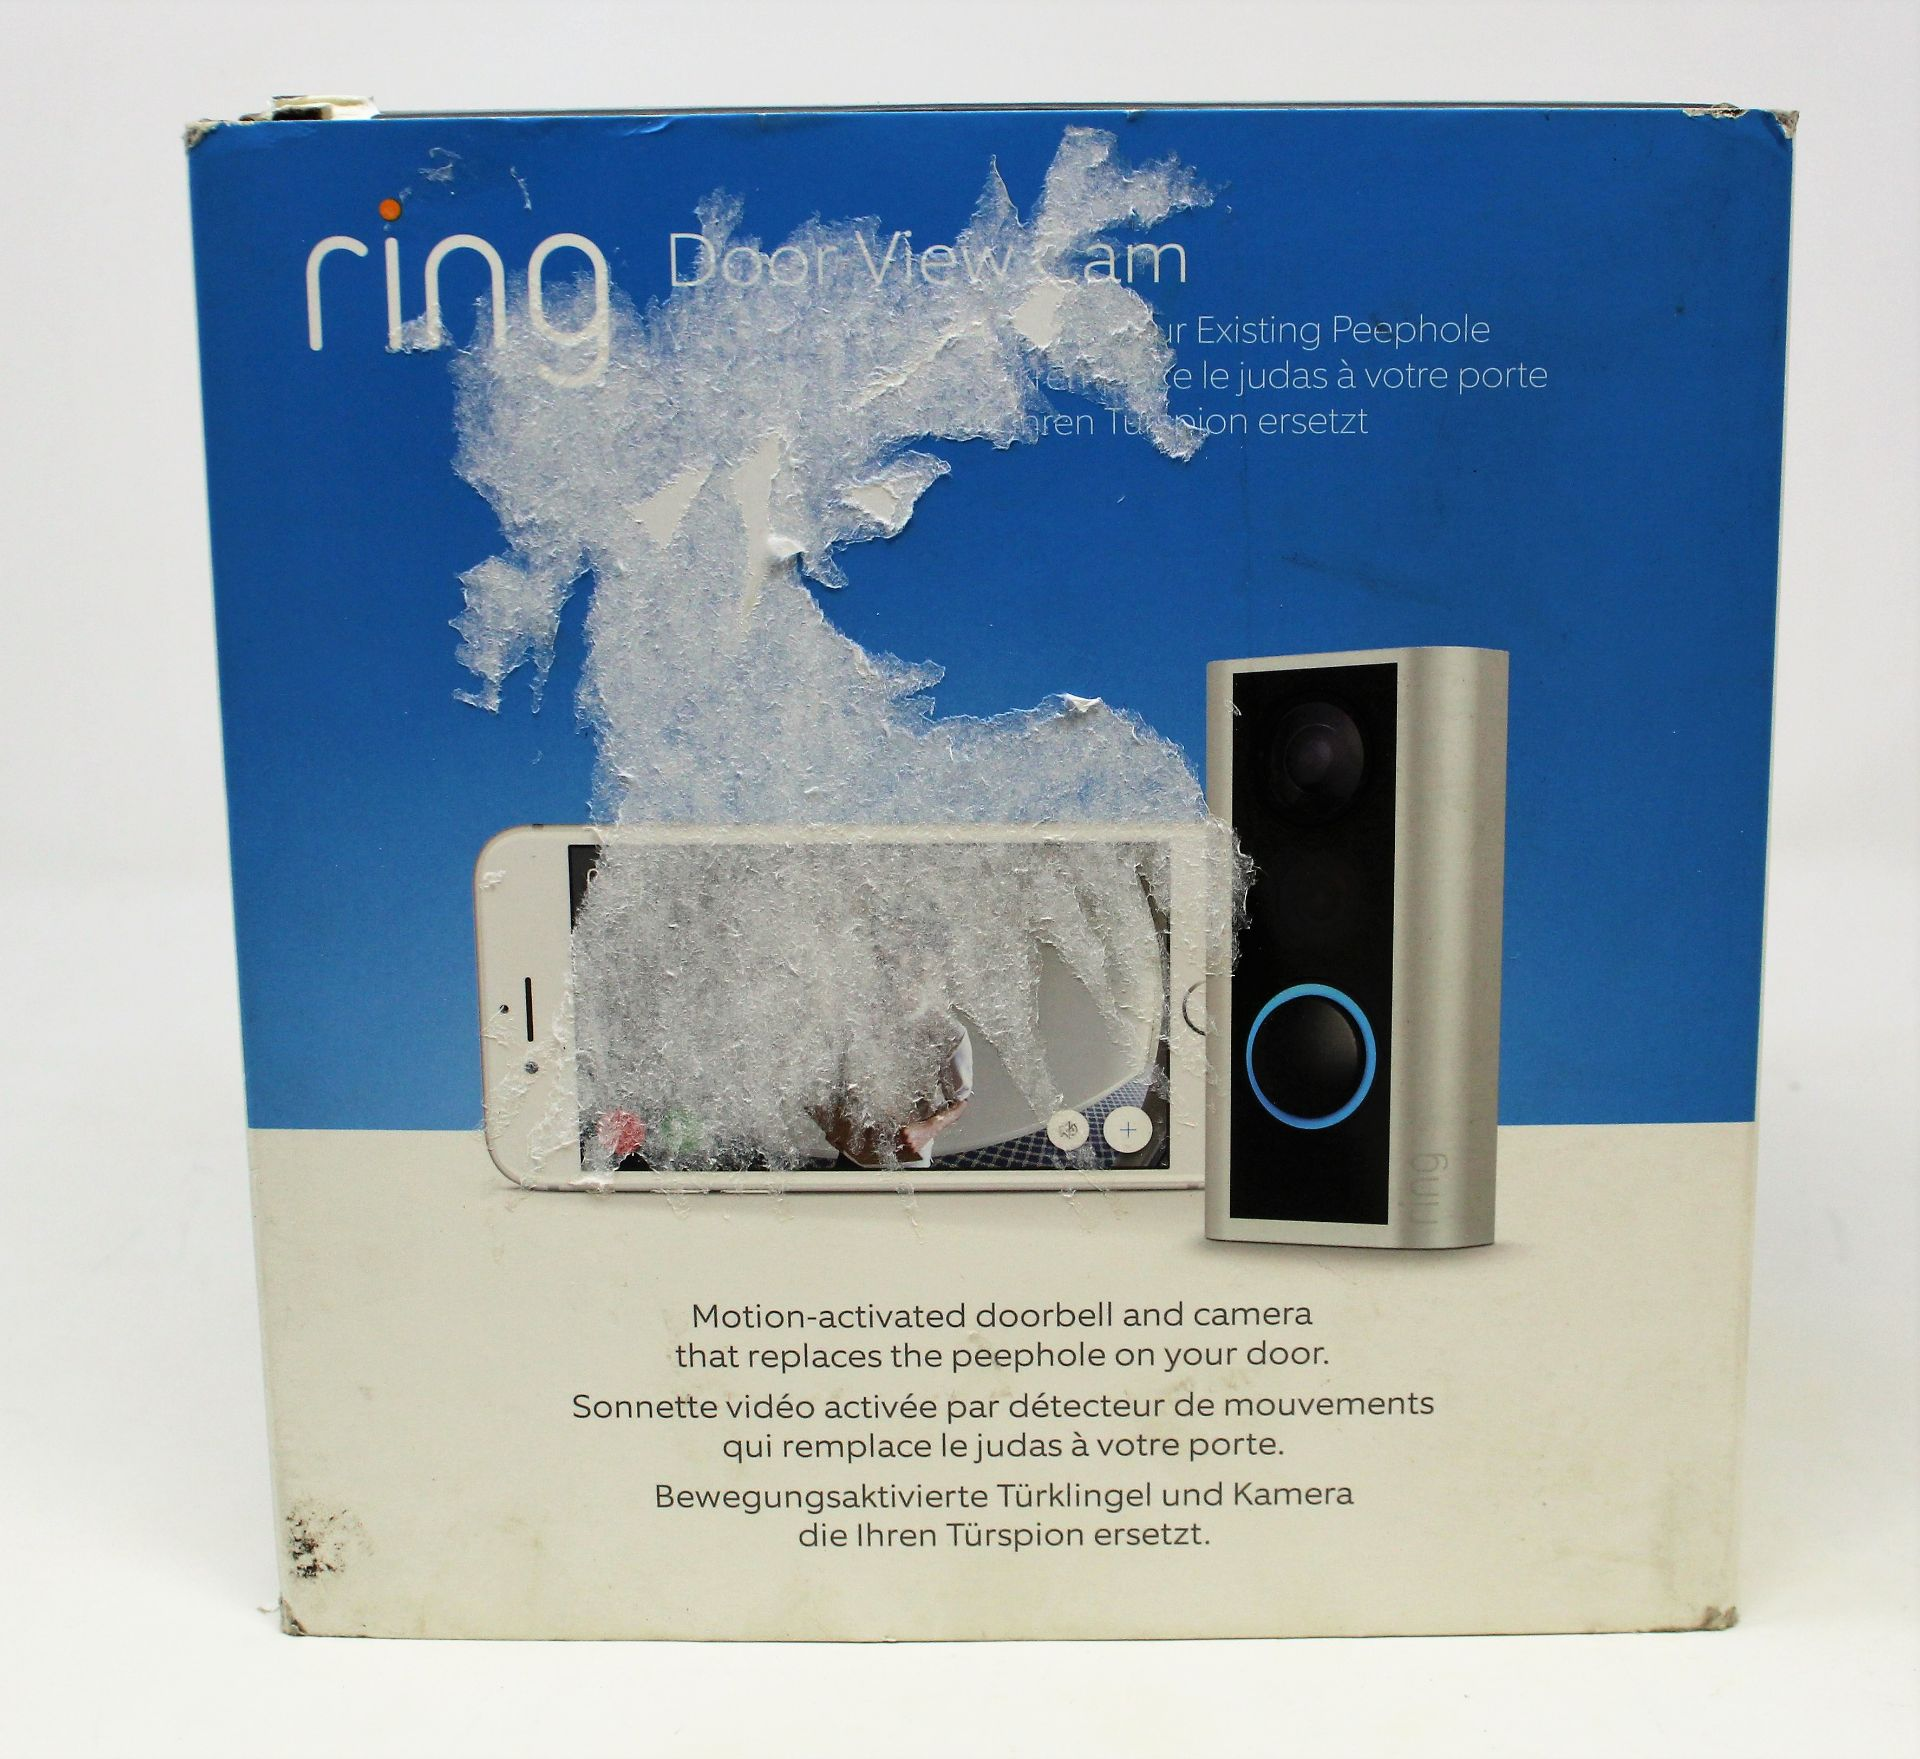 A boxed Ring Door View Cam in Silver (Appears as new. Damaged box). - Image 2 of 7